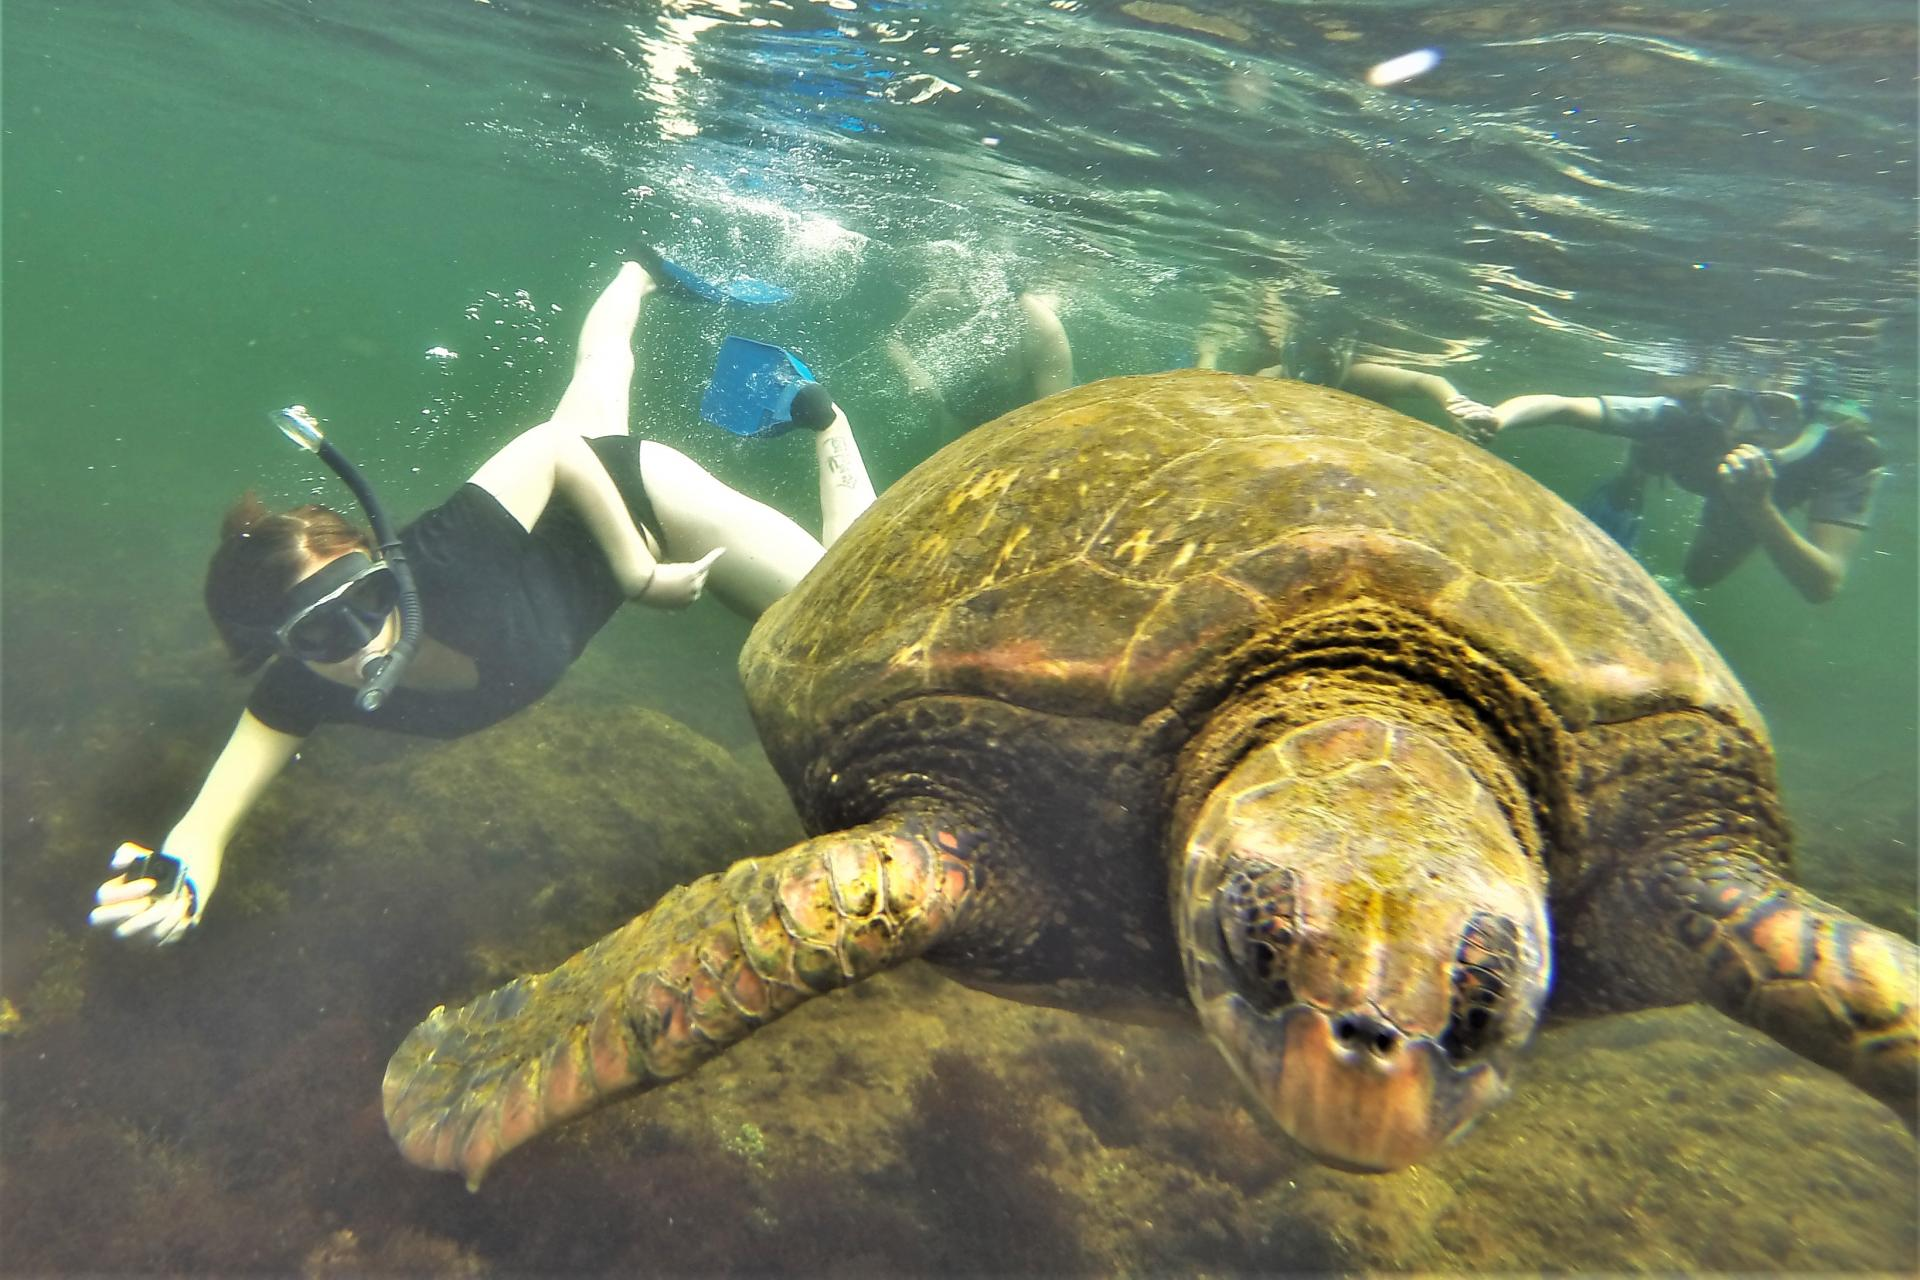 A snorkeller near a sea turtle